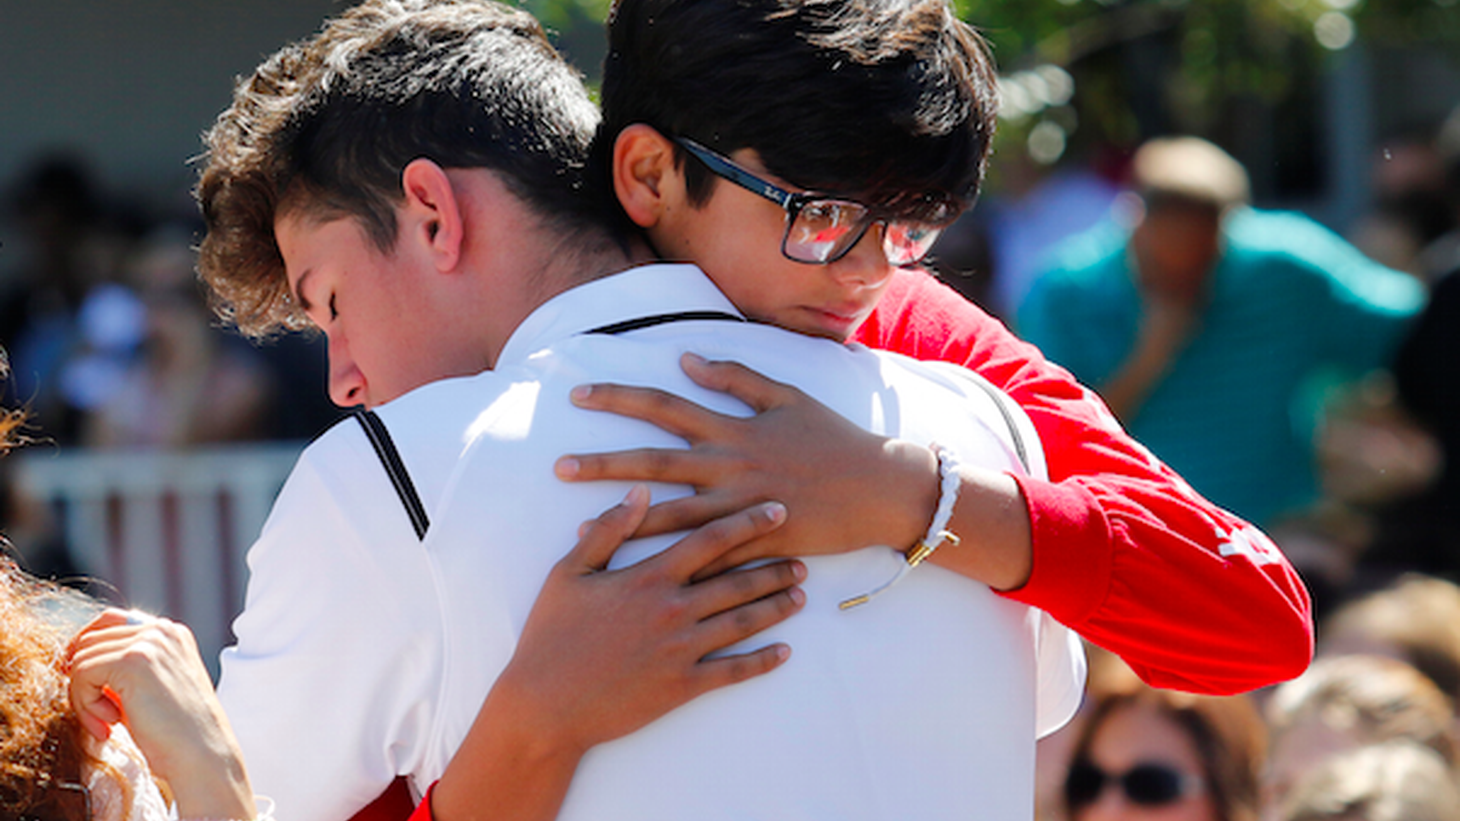 On Wednesday, 19-year-old Nikolas Cruz fatally shot 17 people at Marjory Stoneman High School in Parkland, Florida. He had been kicked out, and reportedly was fascinated with guns.